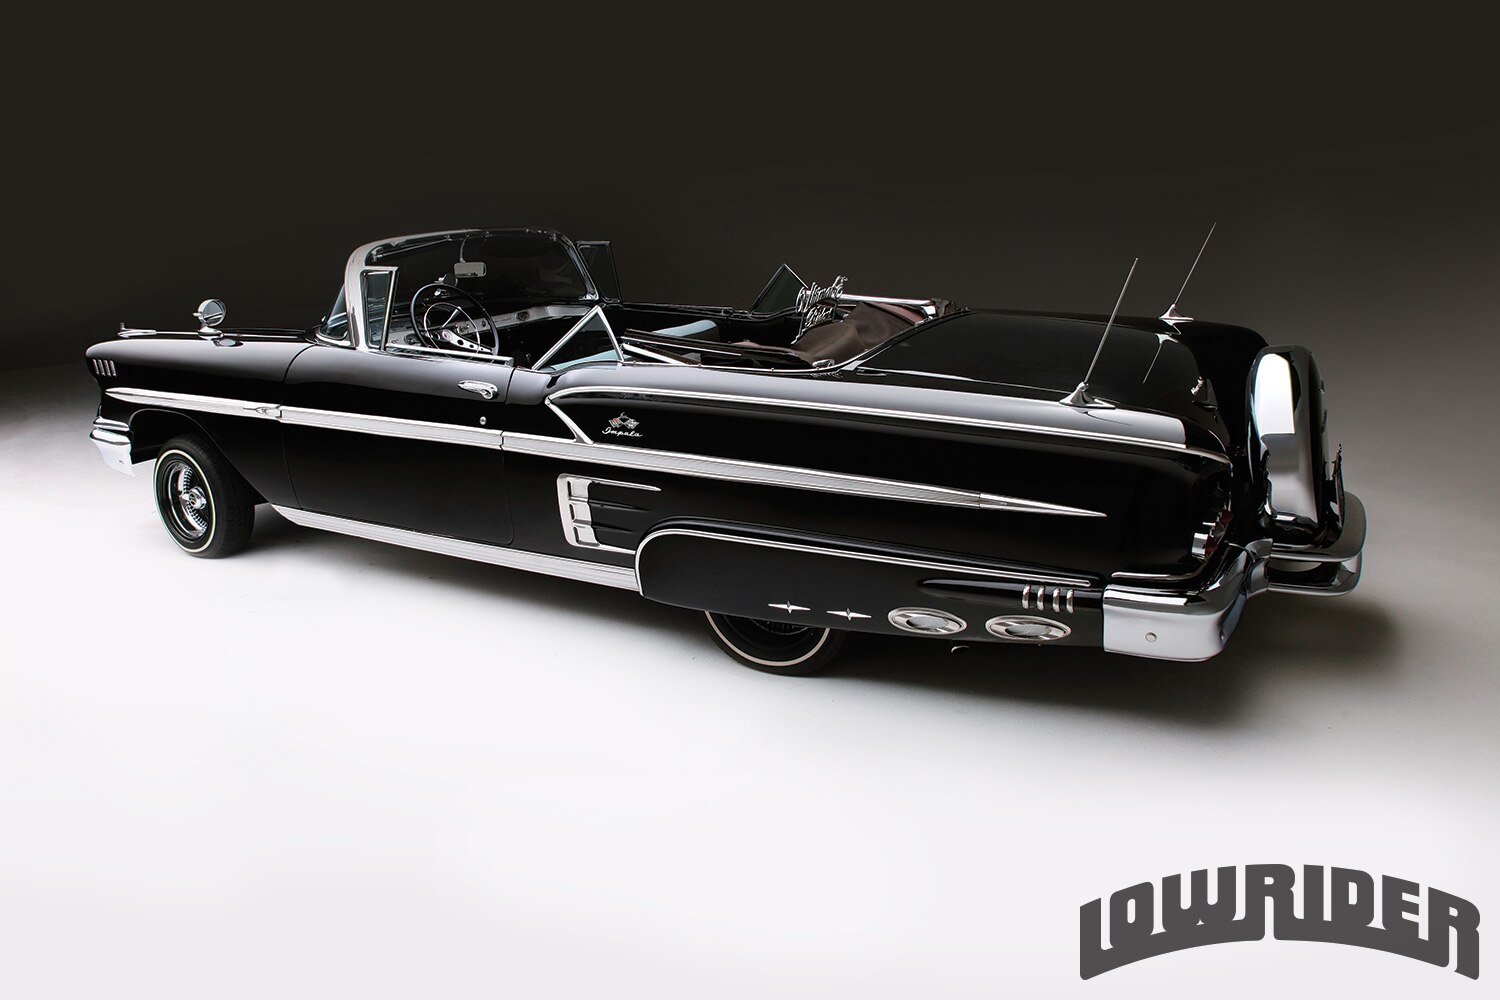 1958-and-1959-chevrolet-impala-convertibles-58-left-side-view2